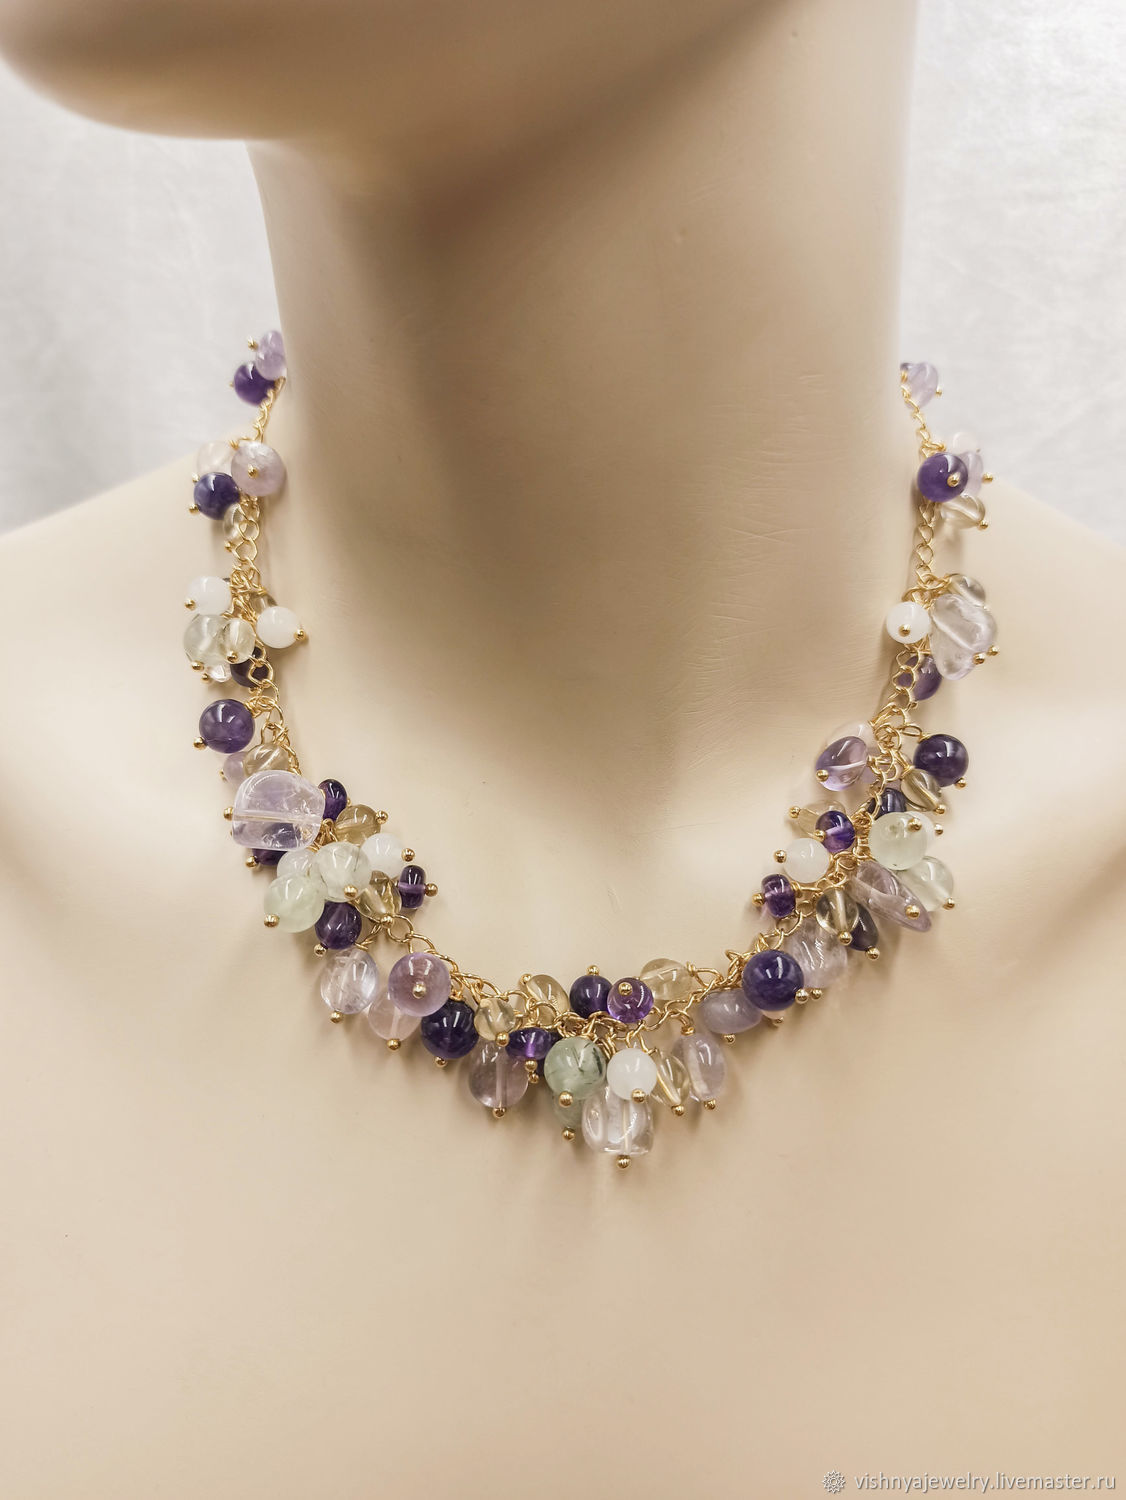 Necklace gold Plated Natural stones lilac, Necklace, Moscow,  Фото №1